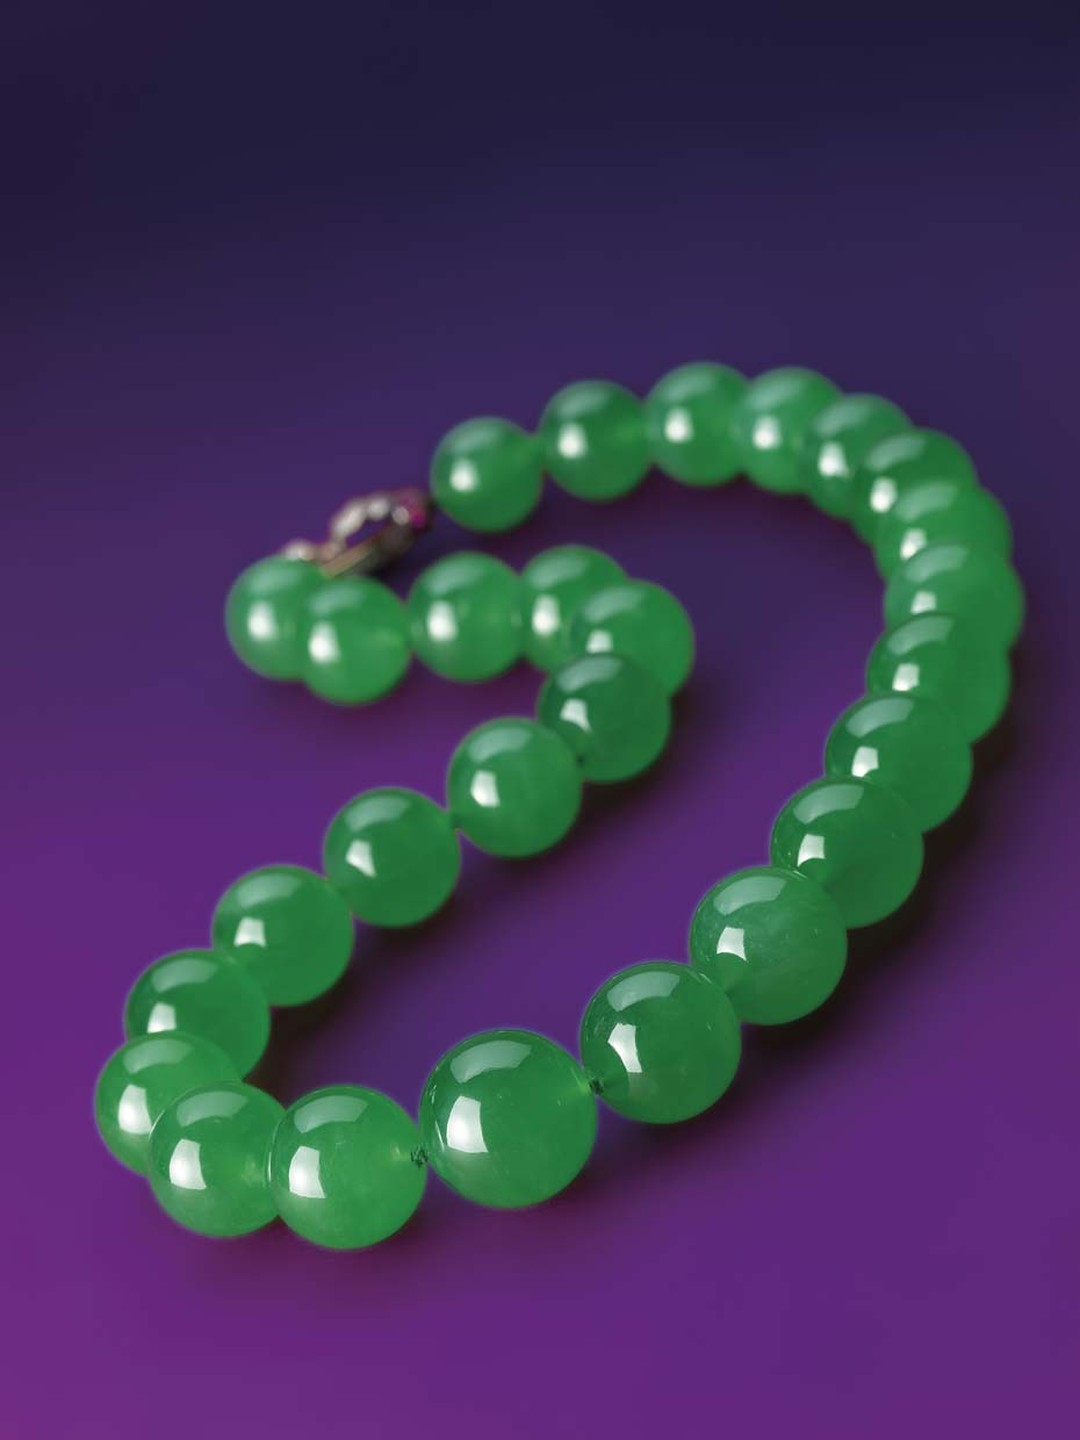 The Hutton-Mdivani necklace, estimated to sell for upwards of US$12.8 million, sold for a record-breaking US$27.44 million at Sotheby's Hong Kong on 6 April 2014.